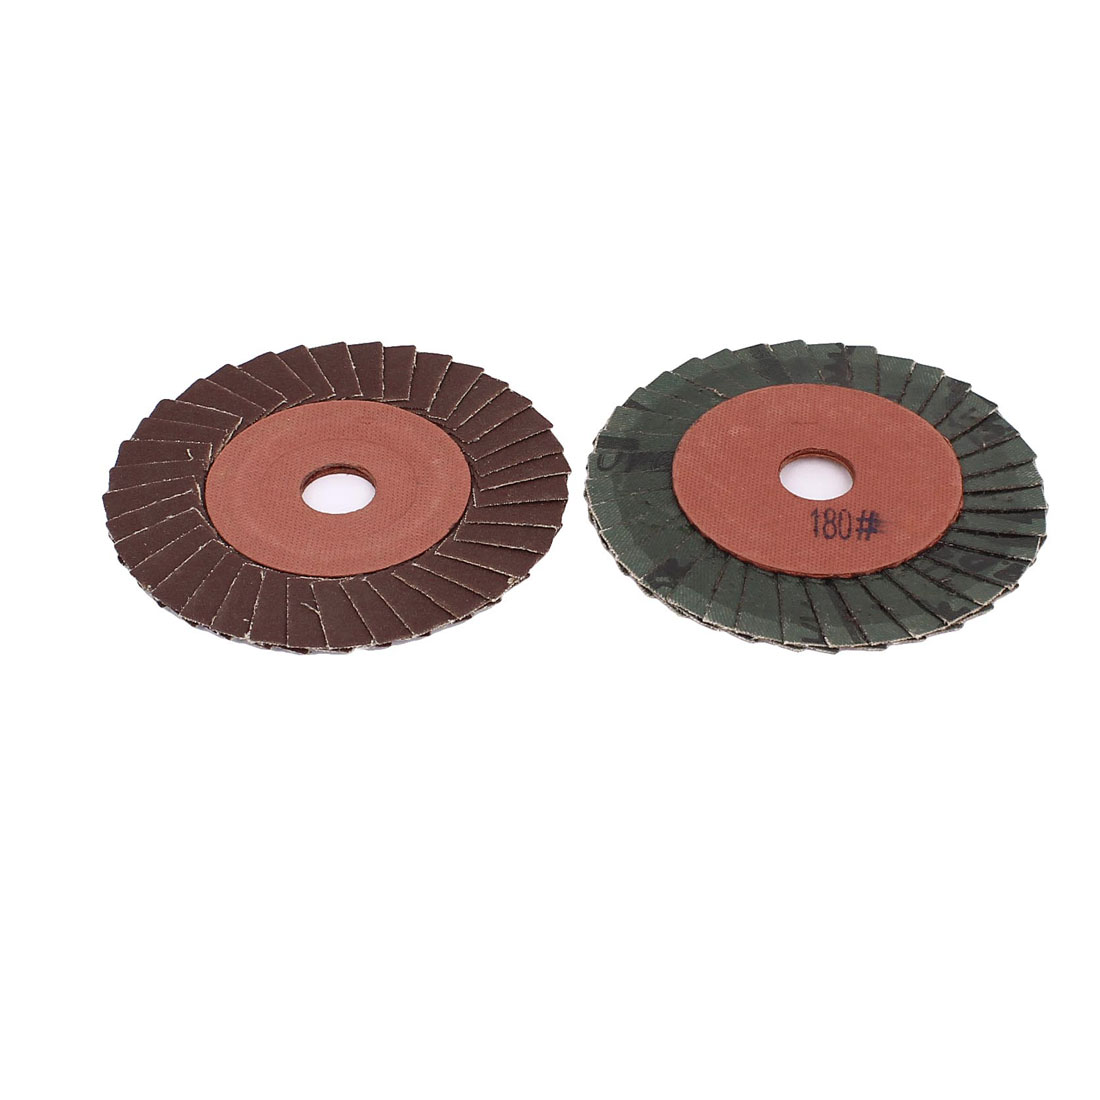 "2 Pcs 4"" 100mm Dia Sanding Flap Disc Grinding Wheel 180 Grit for Angle Grinder"